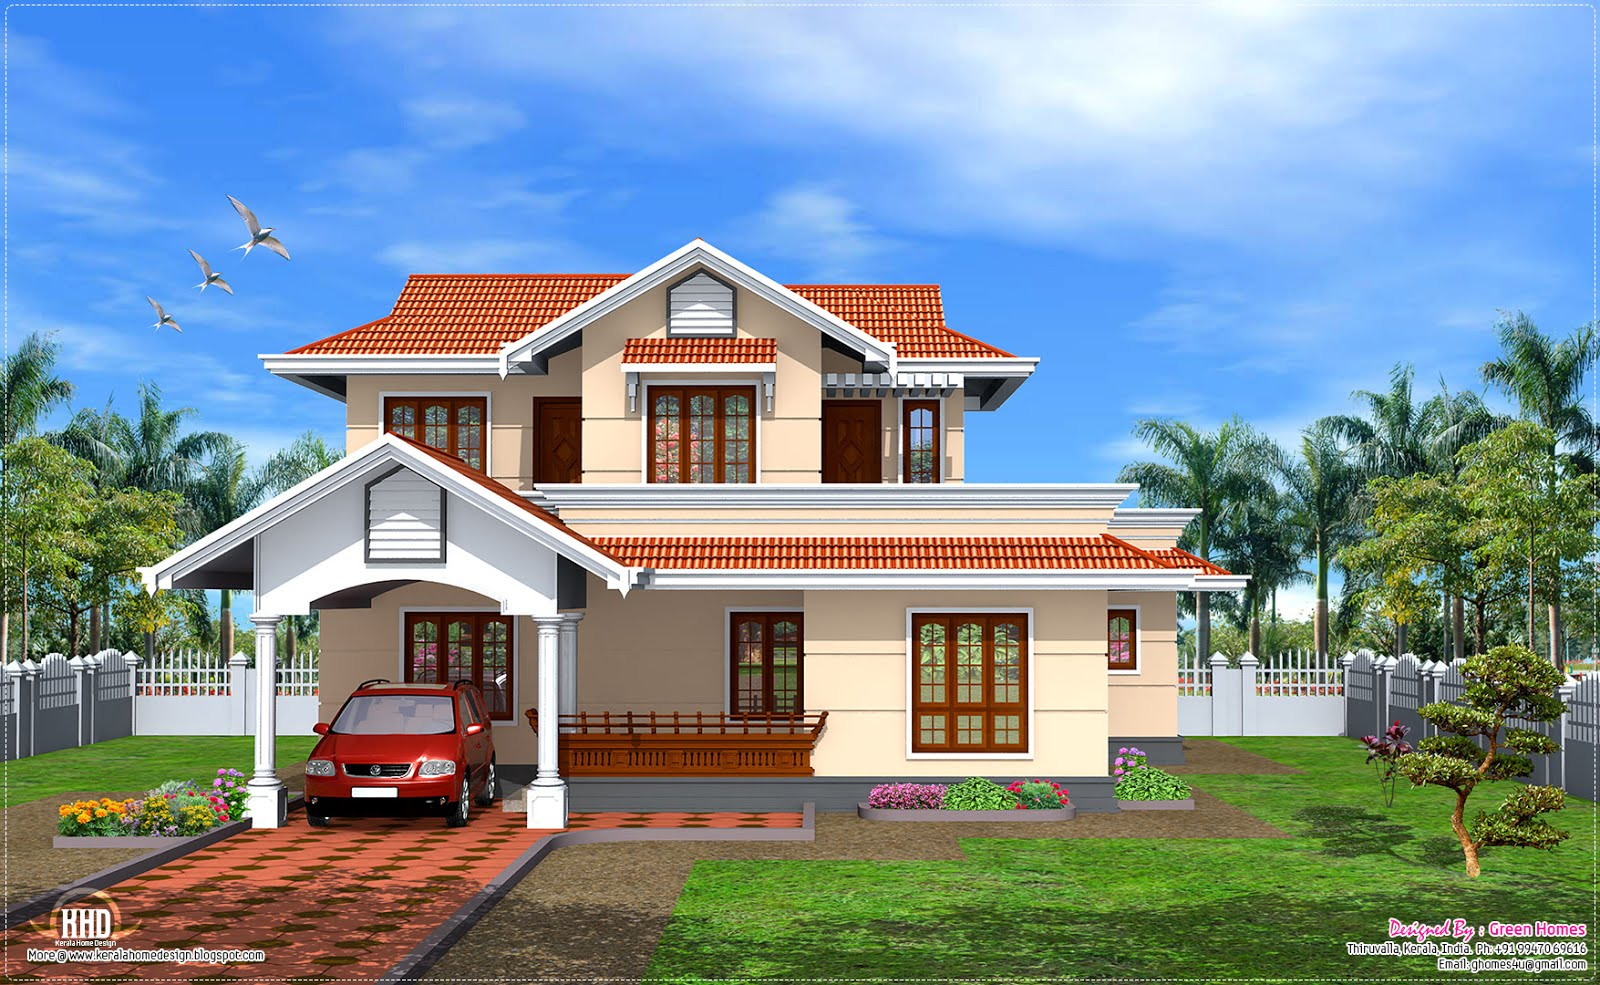 Outstanding Kerala Home Design Model 1600 x 985 · 354 kB · jpeg